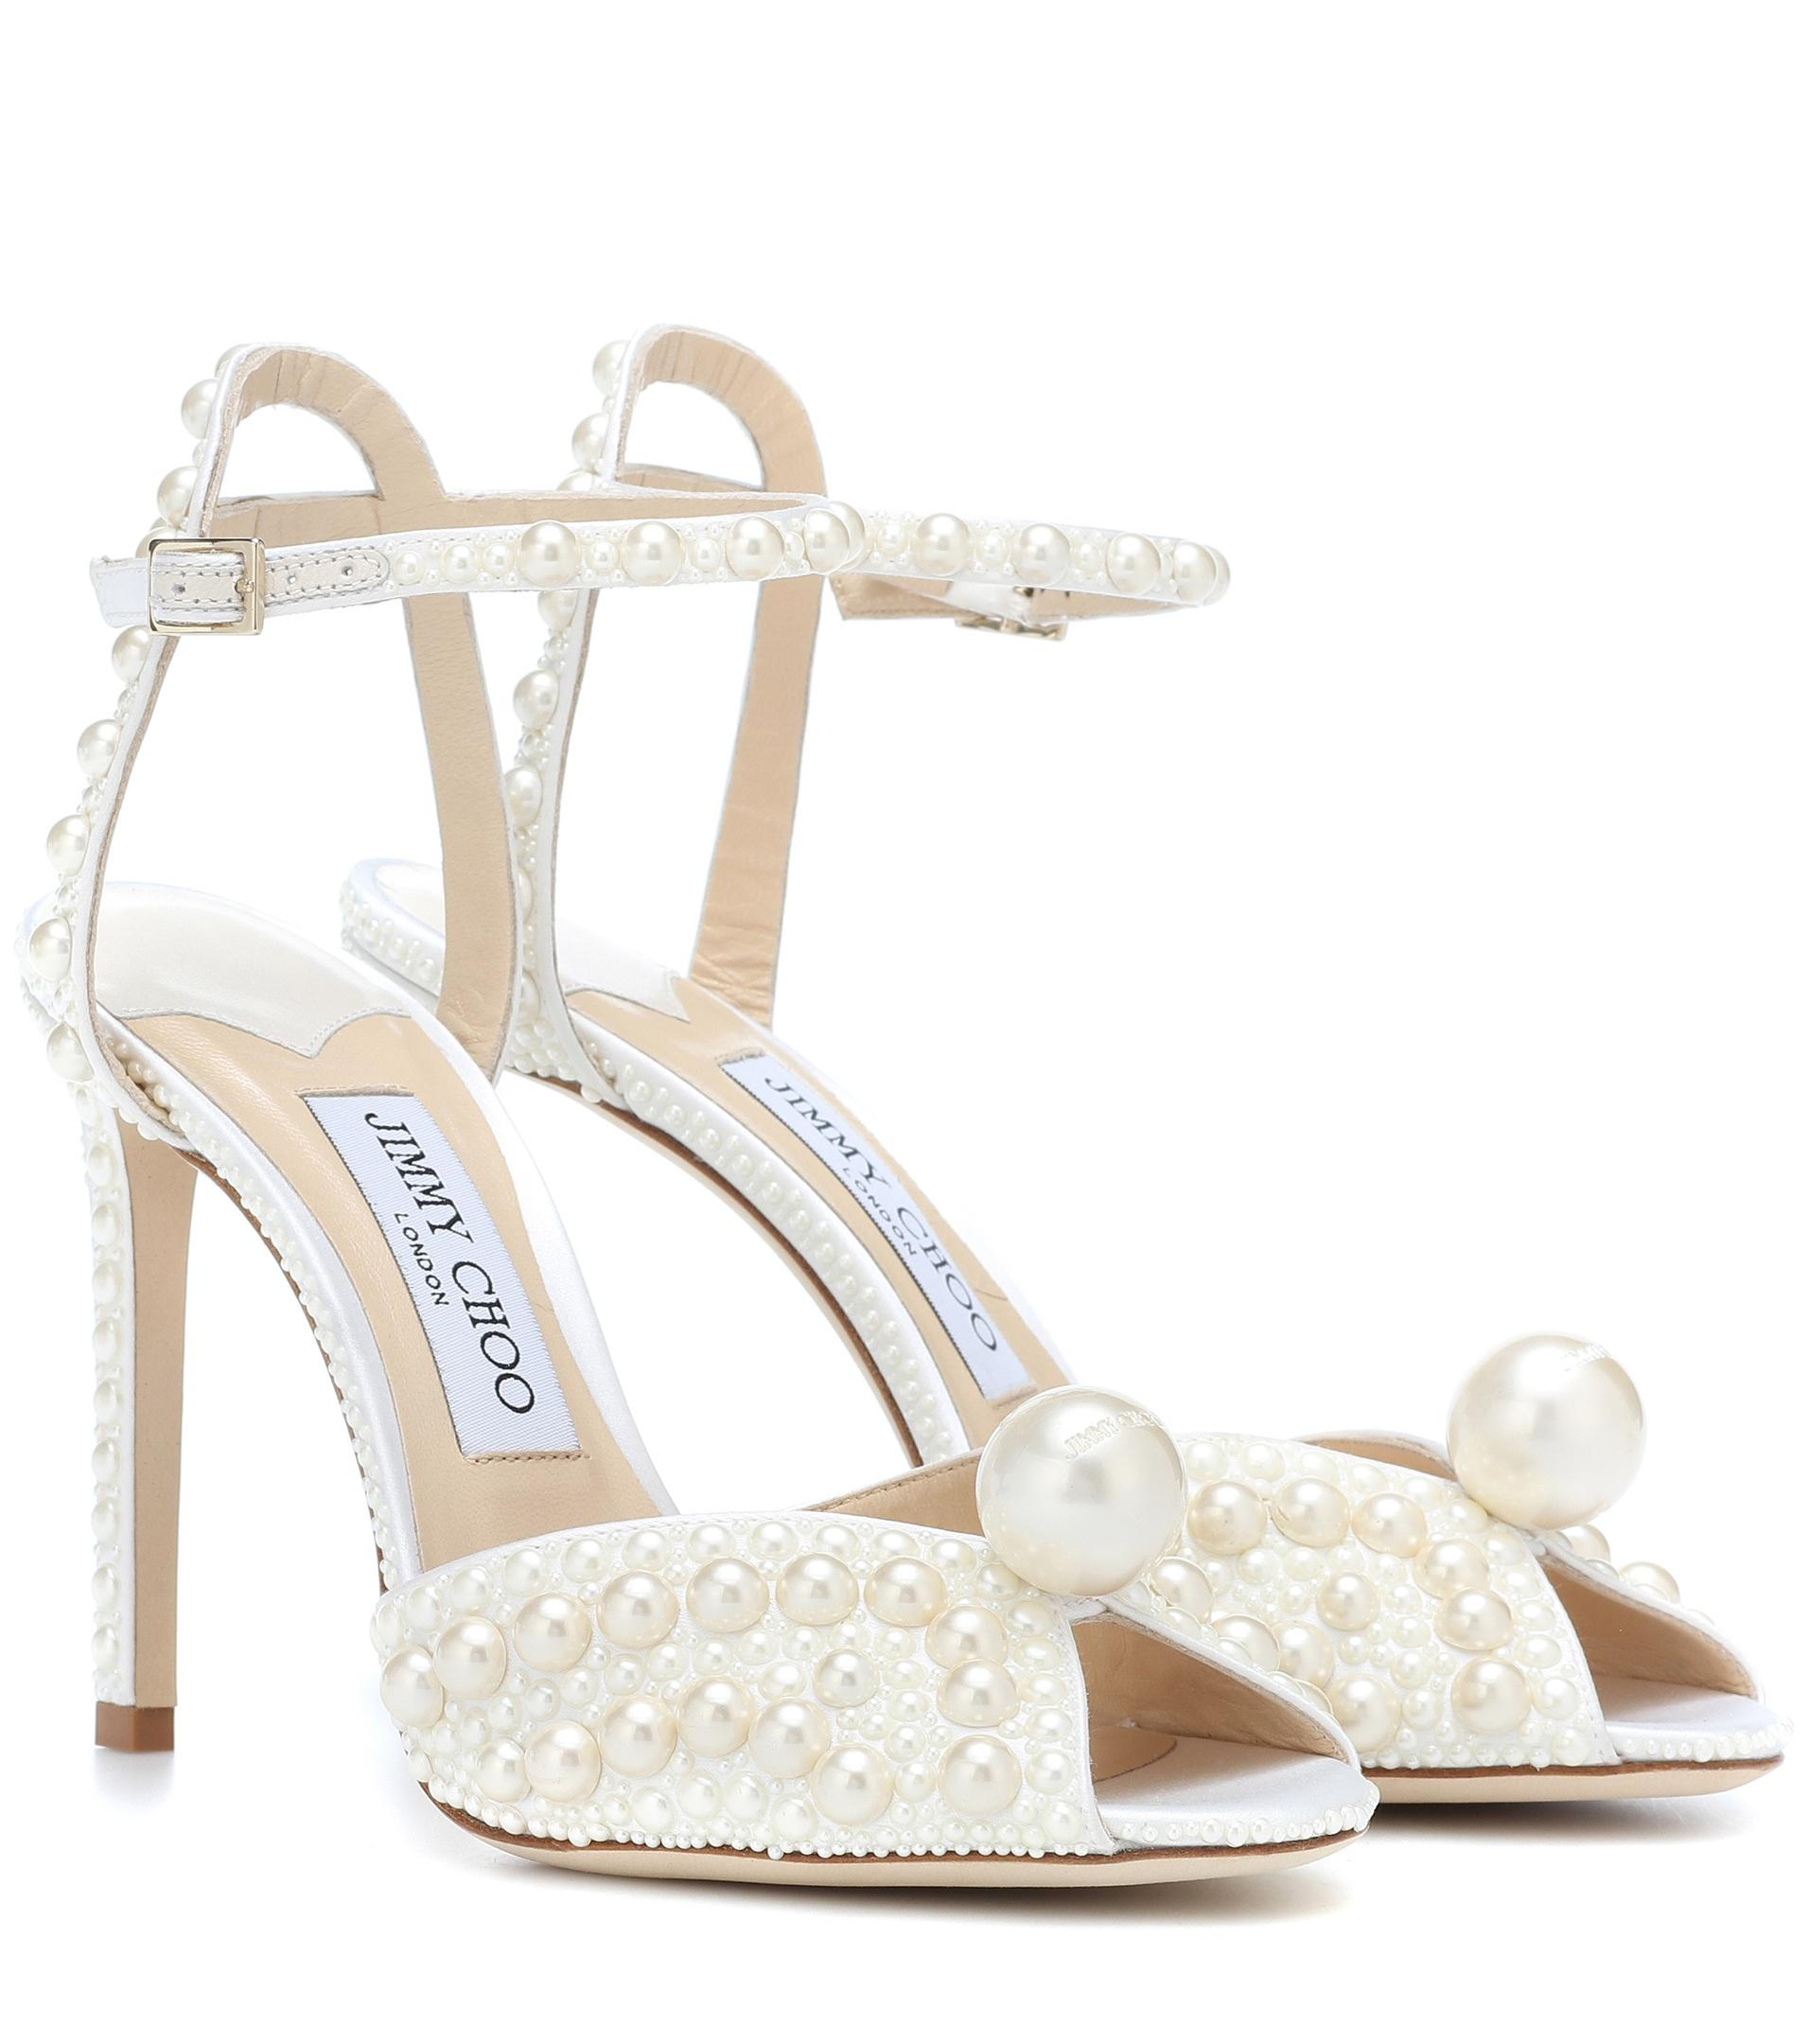 d7289b2dc88 Lyst - Jimmy Choo Sacora 100 Embellished Sandals in White